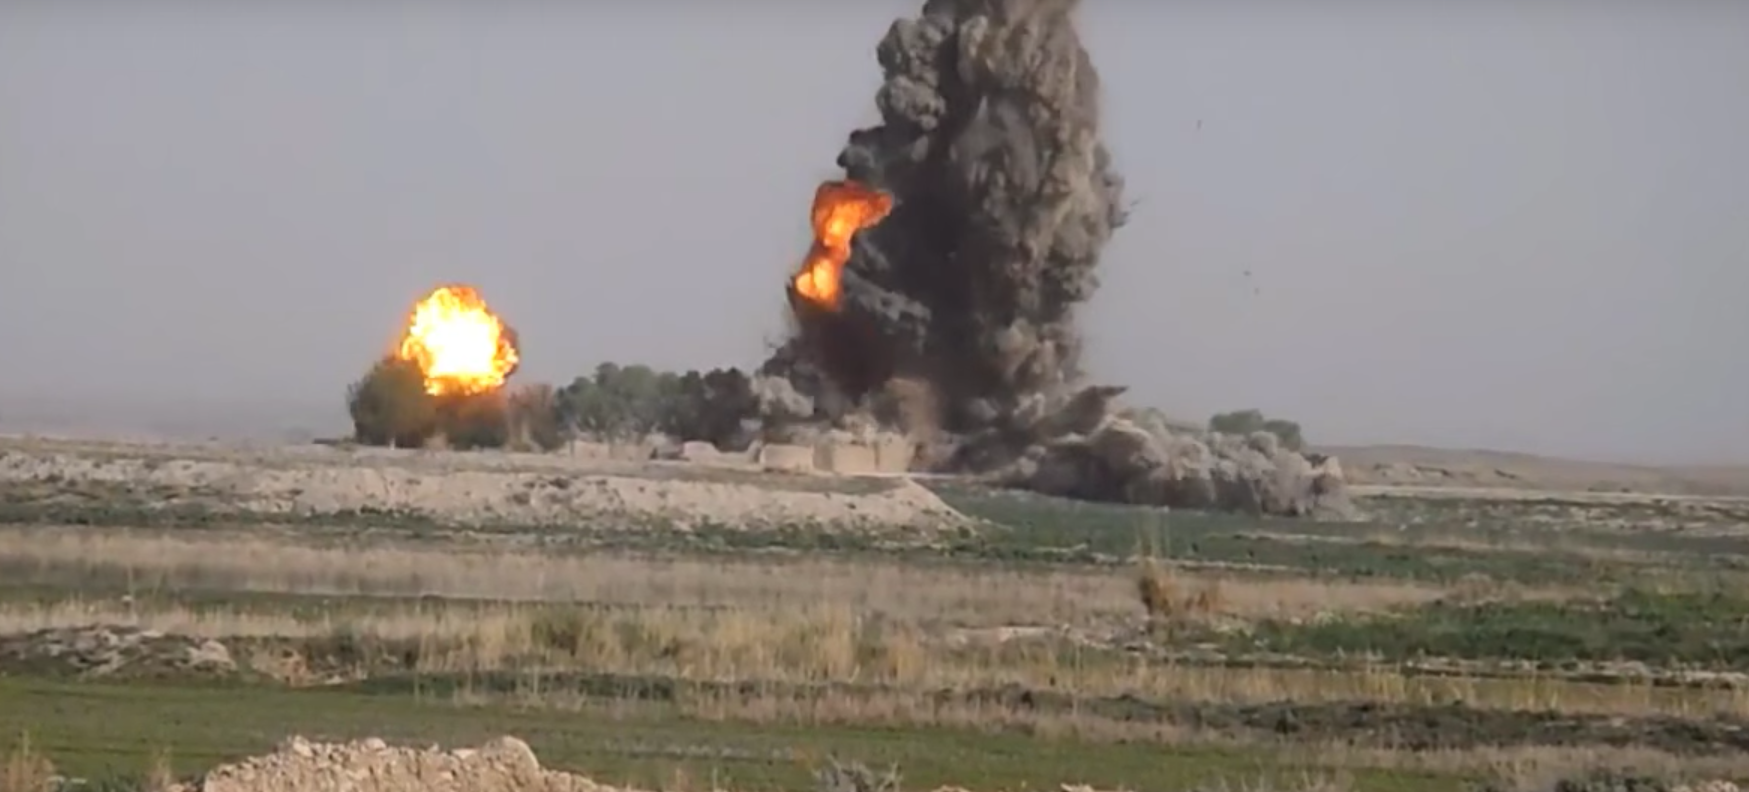 Watch JDAMS Bombs Destroy IED Factories In Slow Motion Featured